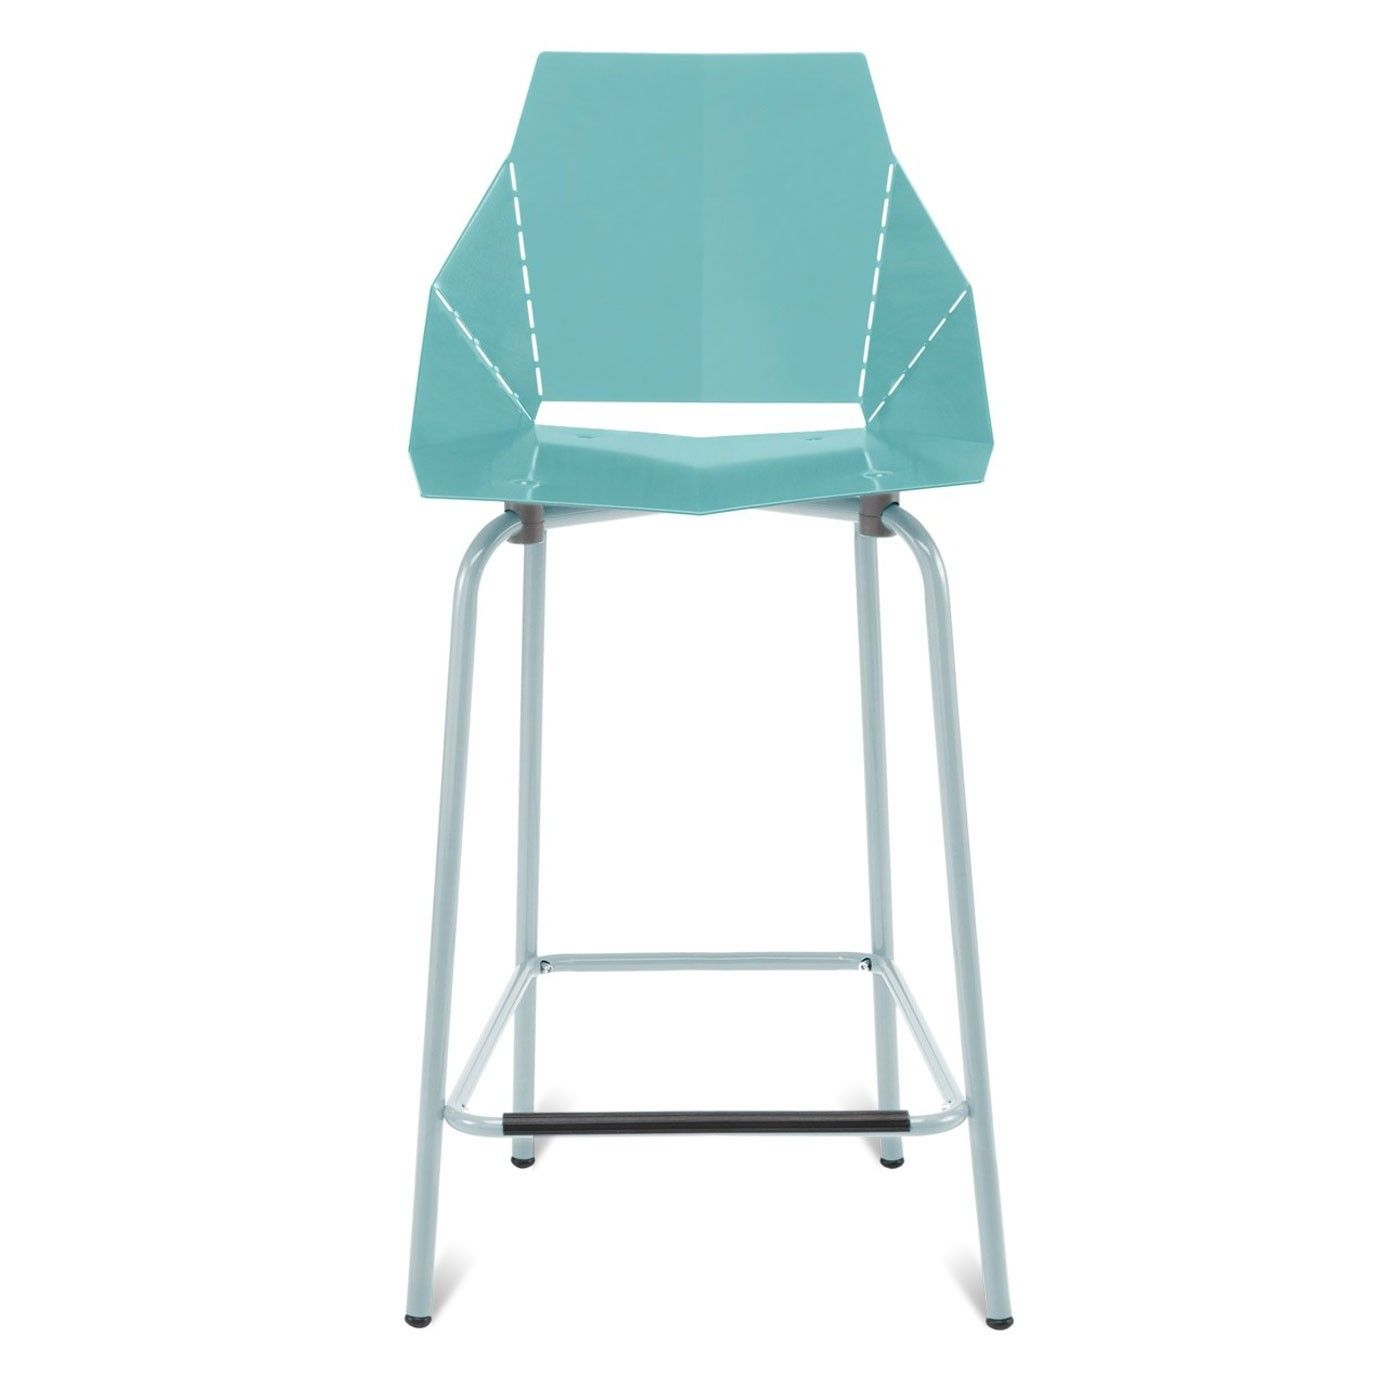 Real Good Counter Stool Modern Bar Stools Cool Bar Stools Stool